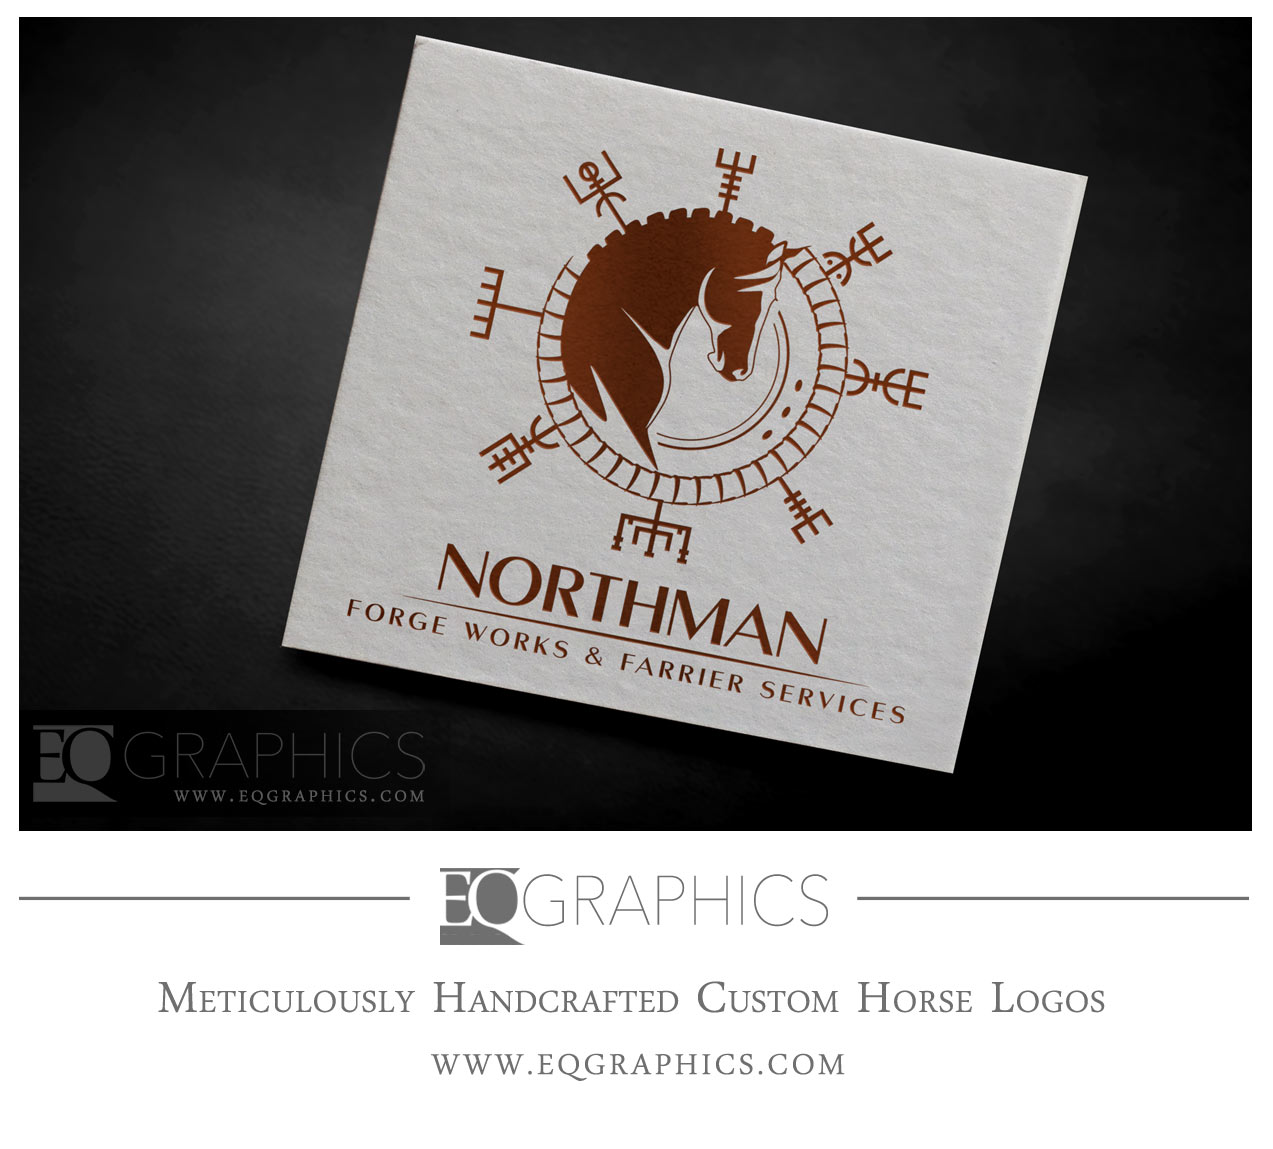 Northman Forge Works and Farrier Services Custom Nordic Horse Logo by EQ Graphics Equine Logos